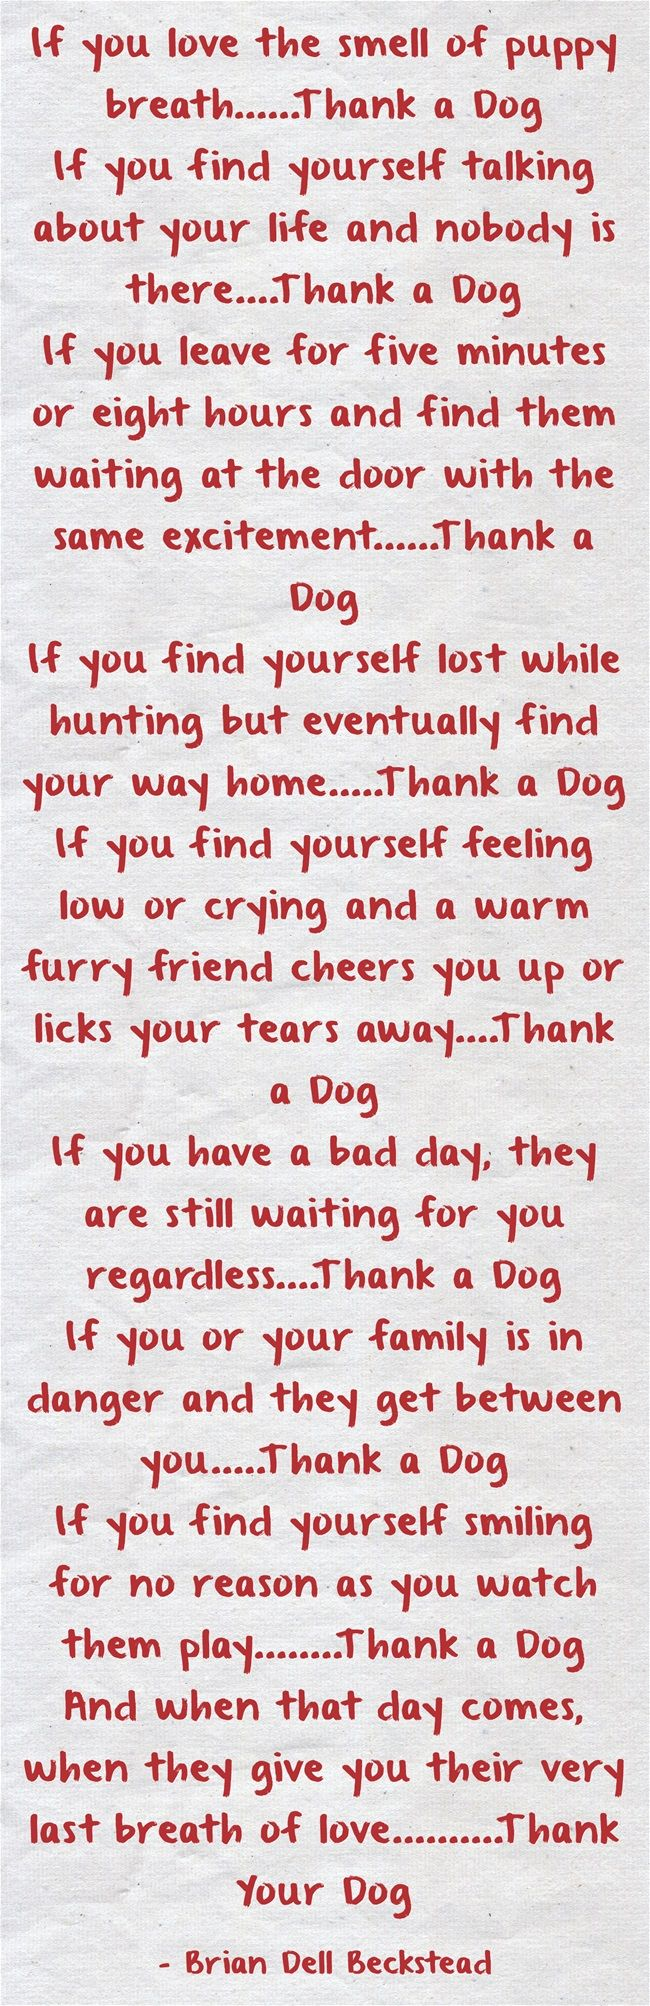 If you love the smell of puppy breath......Thank a Dog If you...